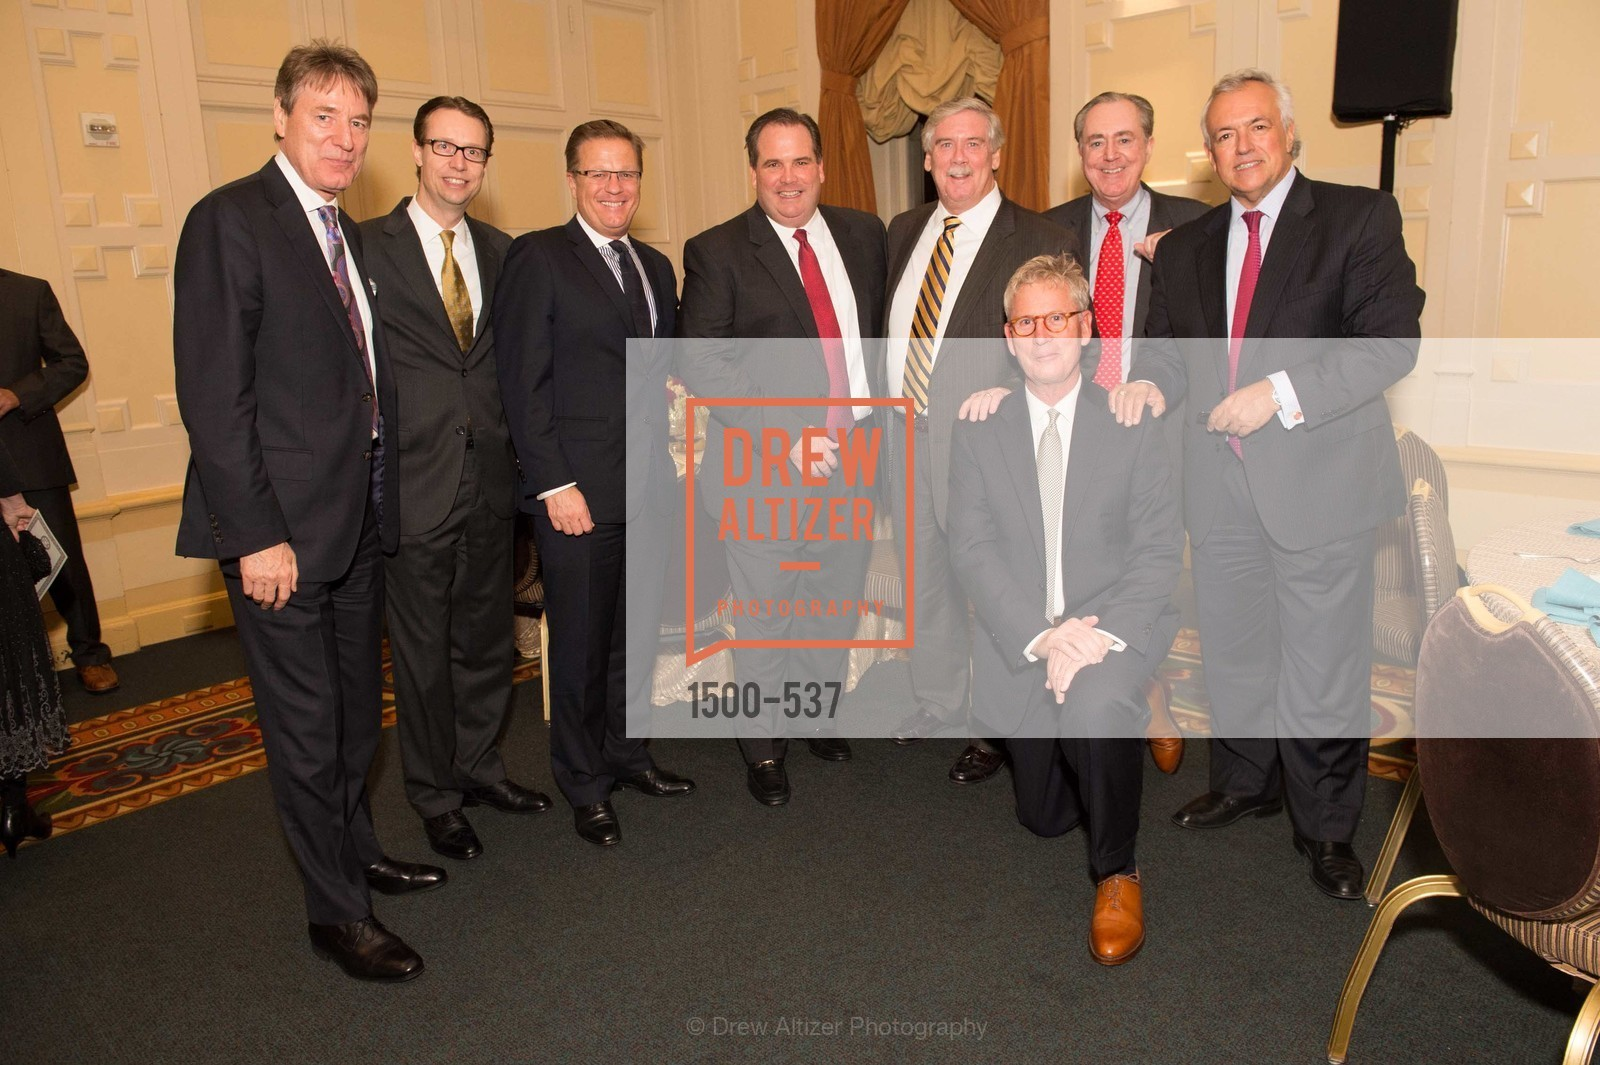 Peter Koehler, Marcus Drench, Jolyon Bulley, John Brady, Gary Stougaard, JT Echeverrigaray, TOP OF THE MARK'S 75TH Anniversary Party, US, November 6th, 2014,Drew Altizer, Drew Altizer Photography, full-service agency, private events, San Francisco photographer, photographer california